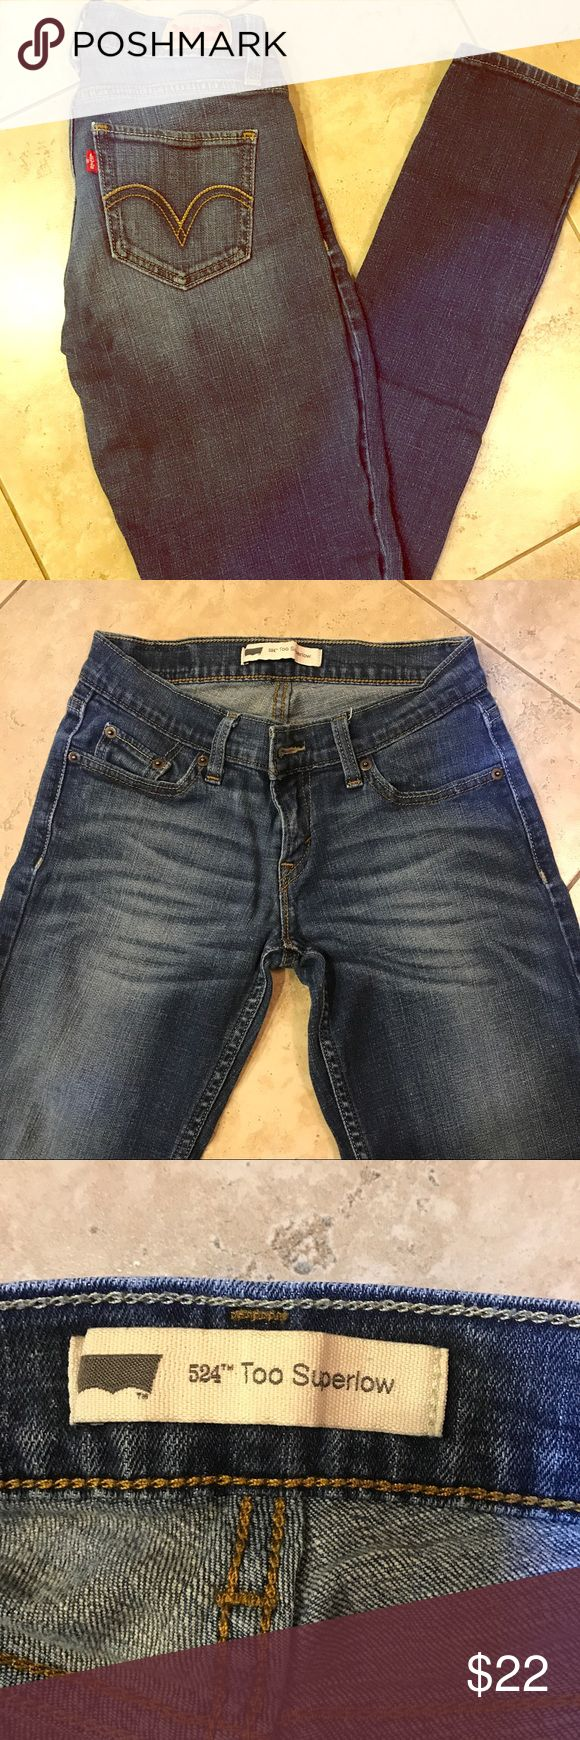 Levis Skinny Jeans Levis Skinny Jeans. Great fit. Size 1M. Worn 3 times. Levi's Jeans Skinny